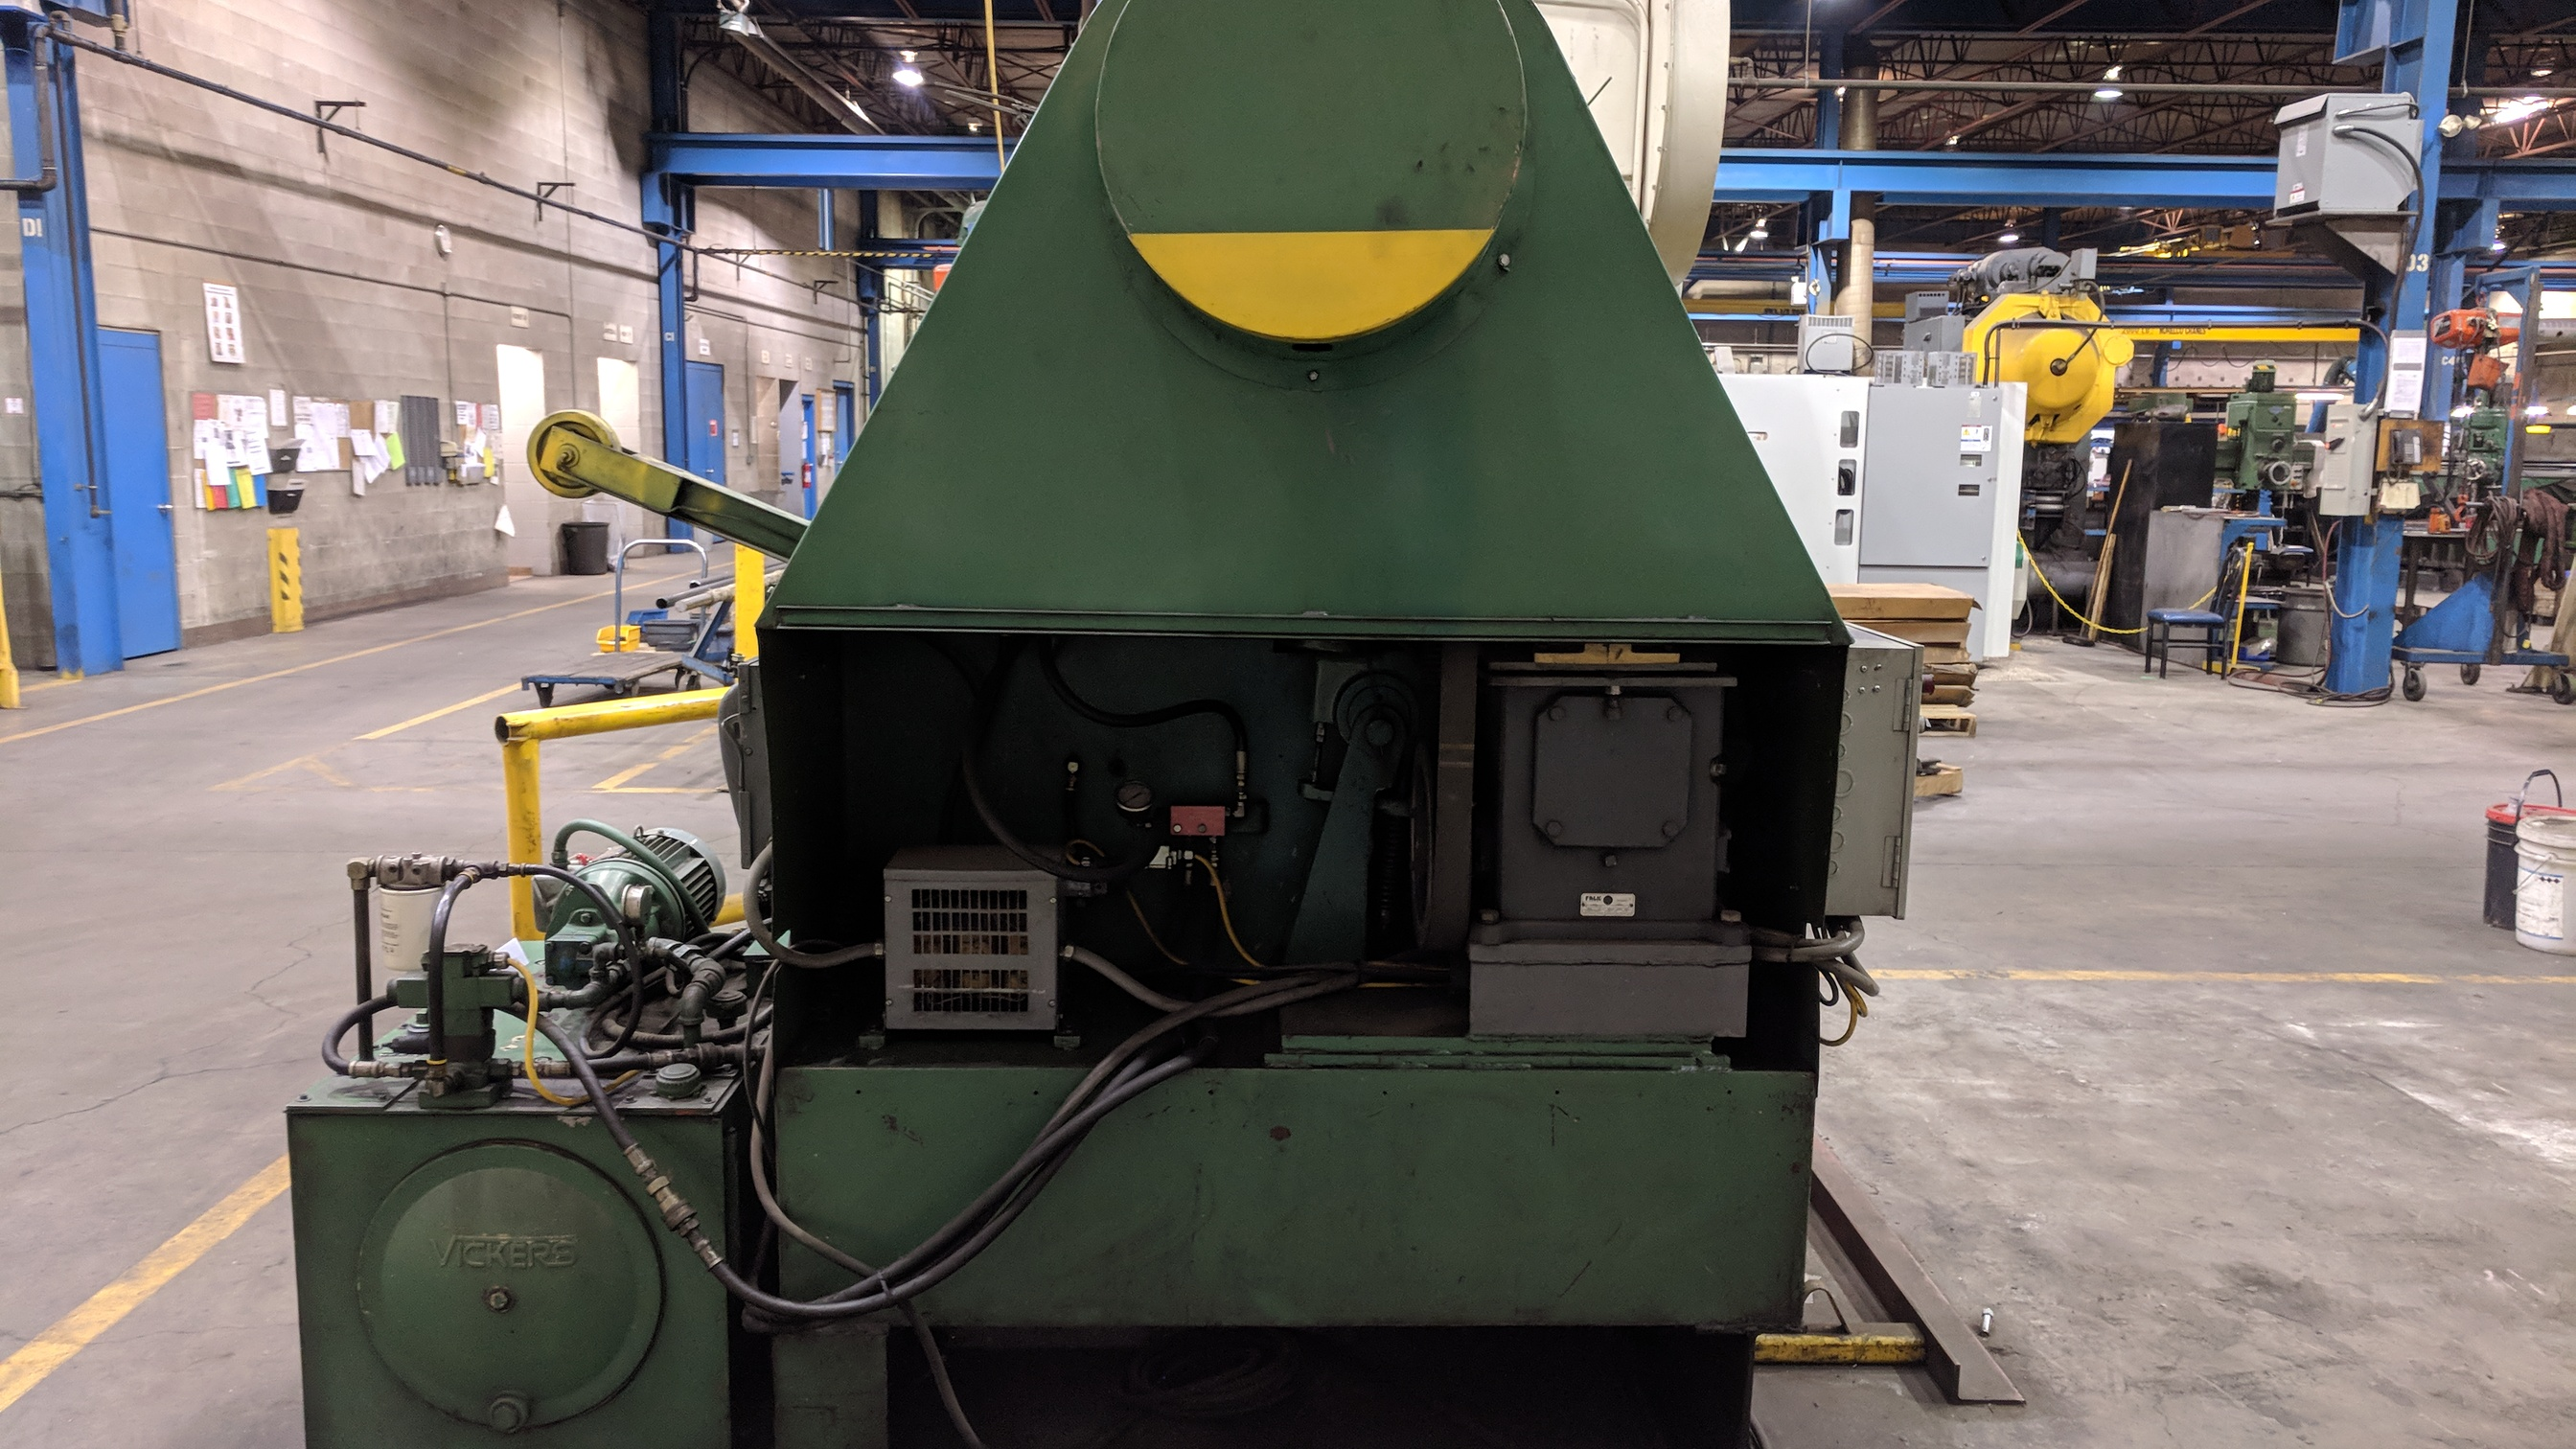 """PRESS LINE PL 1000 48"""" HYDRAULIC POWER UNCOILER, S/N 5608-3/77 (CI) - Image 4 of 6"""